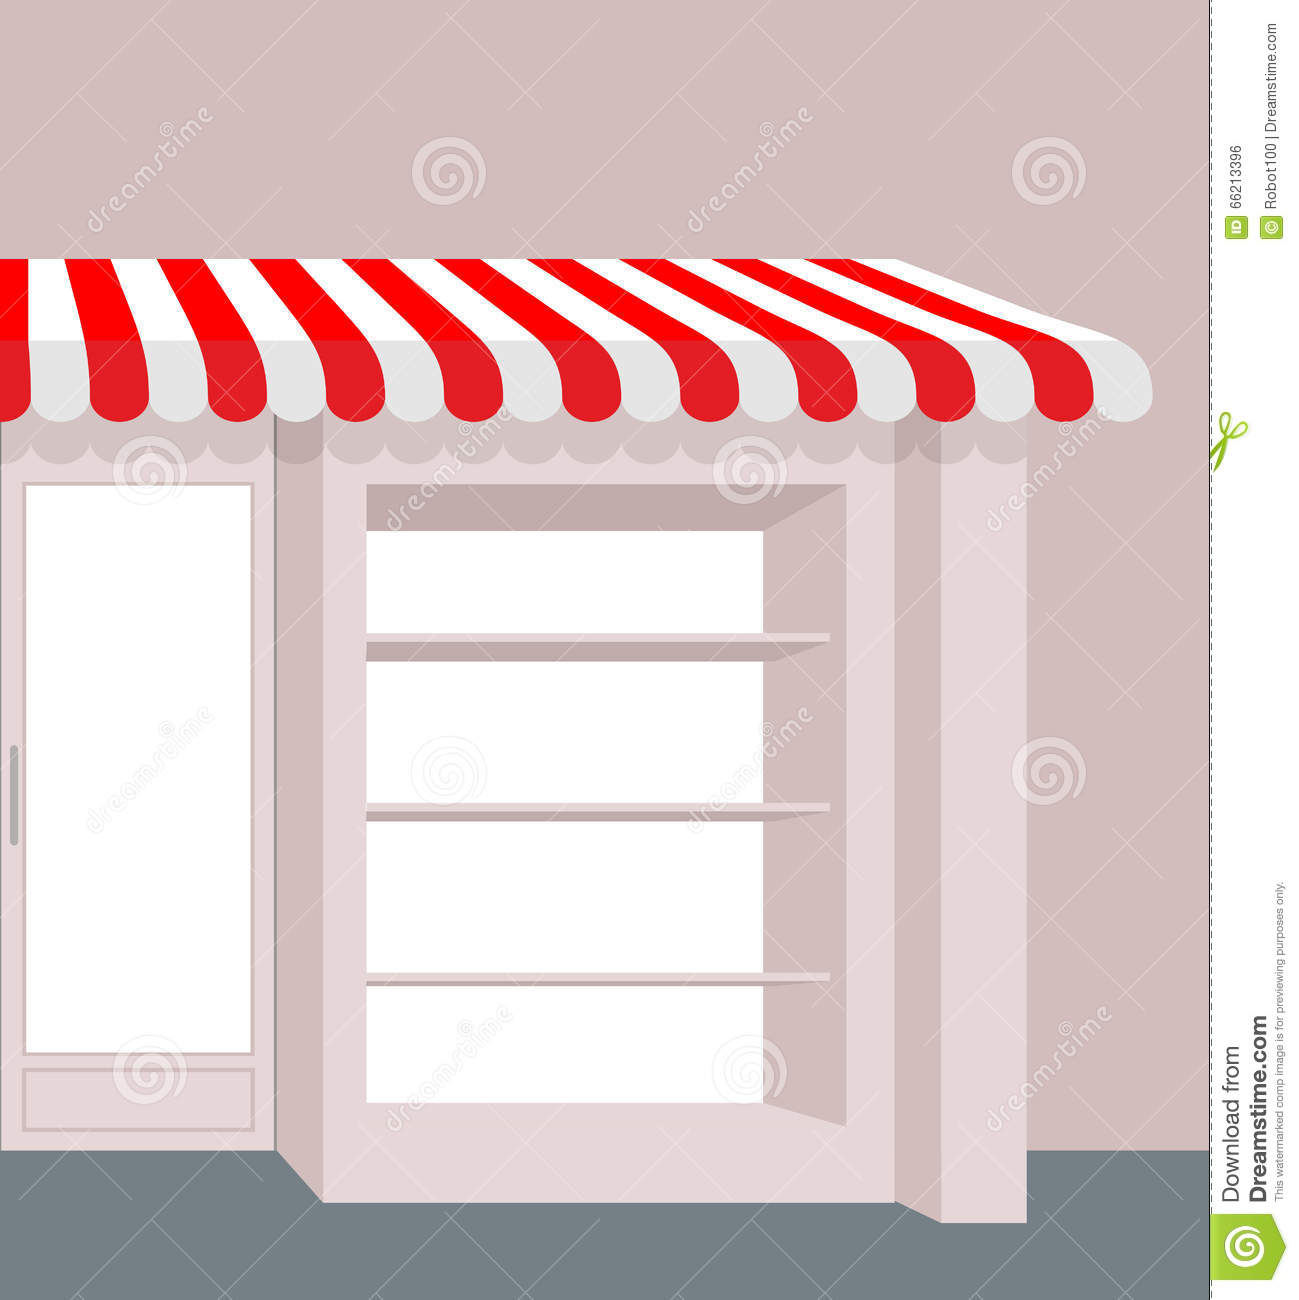 Storefront With Striped Roof. Red And White Stripes Of Canopy Ov.